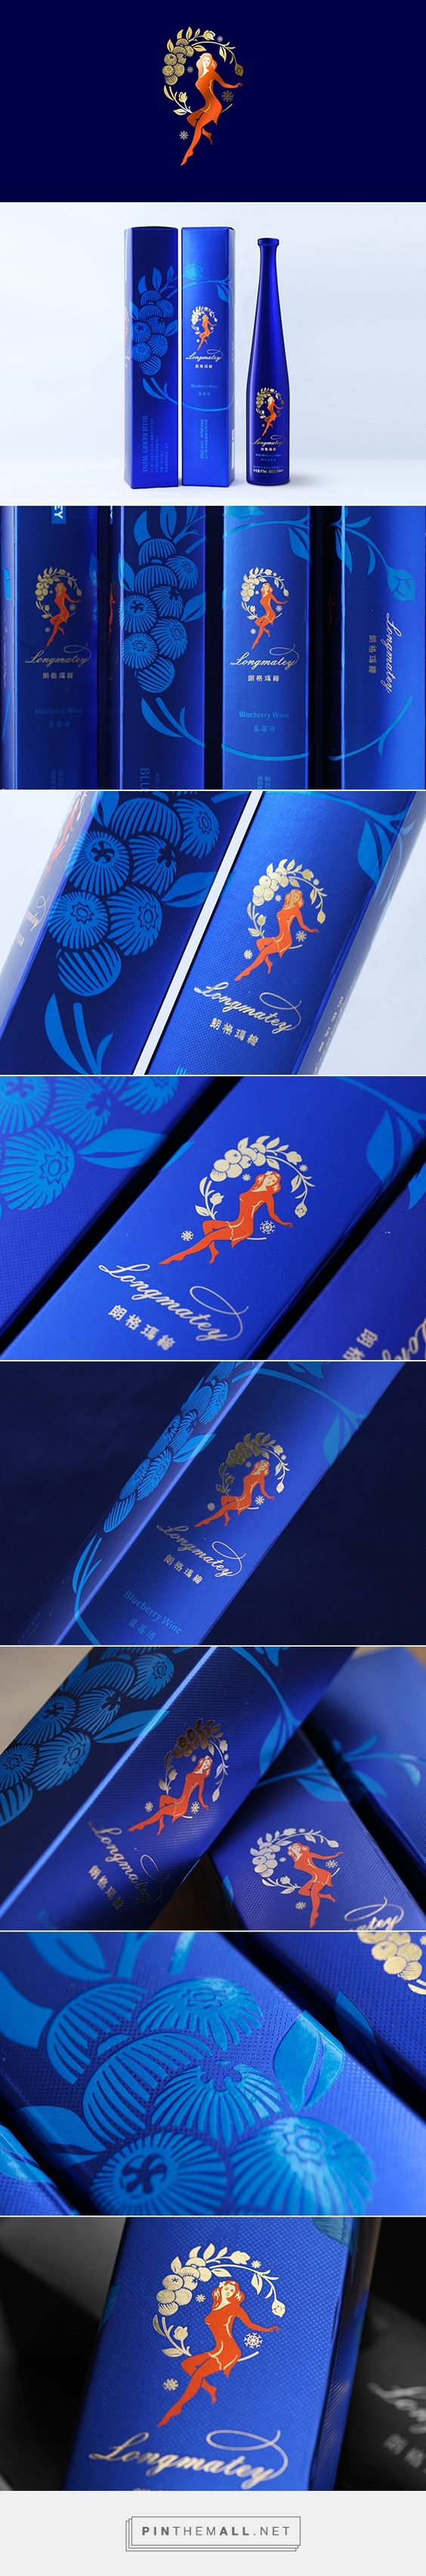 Longemater on Packaging Design Served - created via http://pinthemall.net